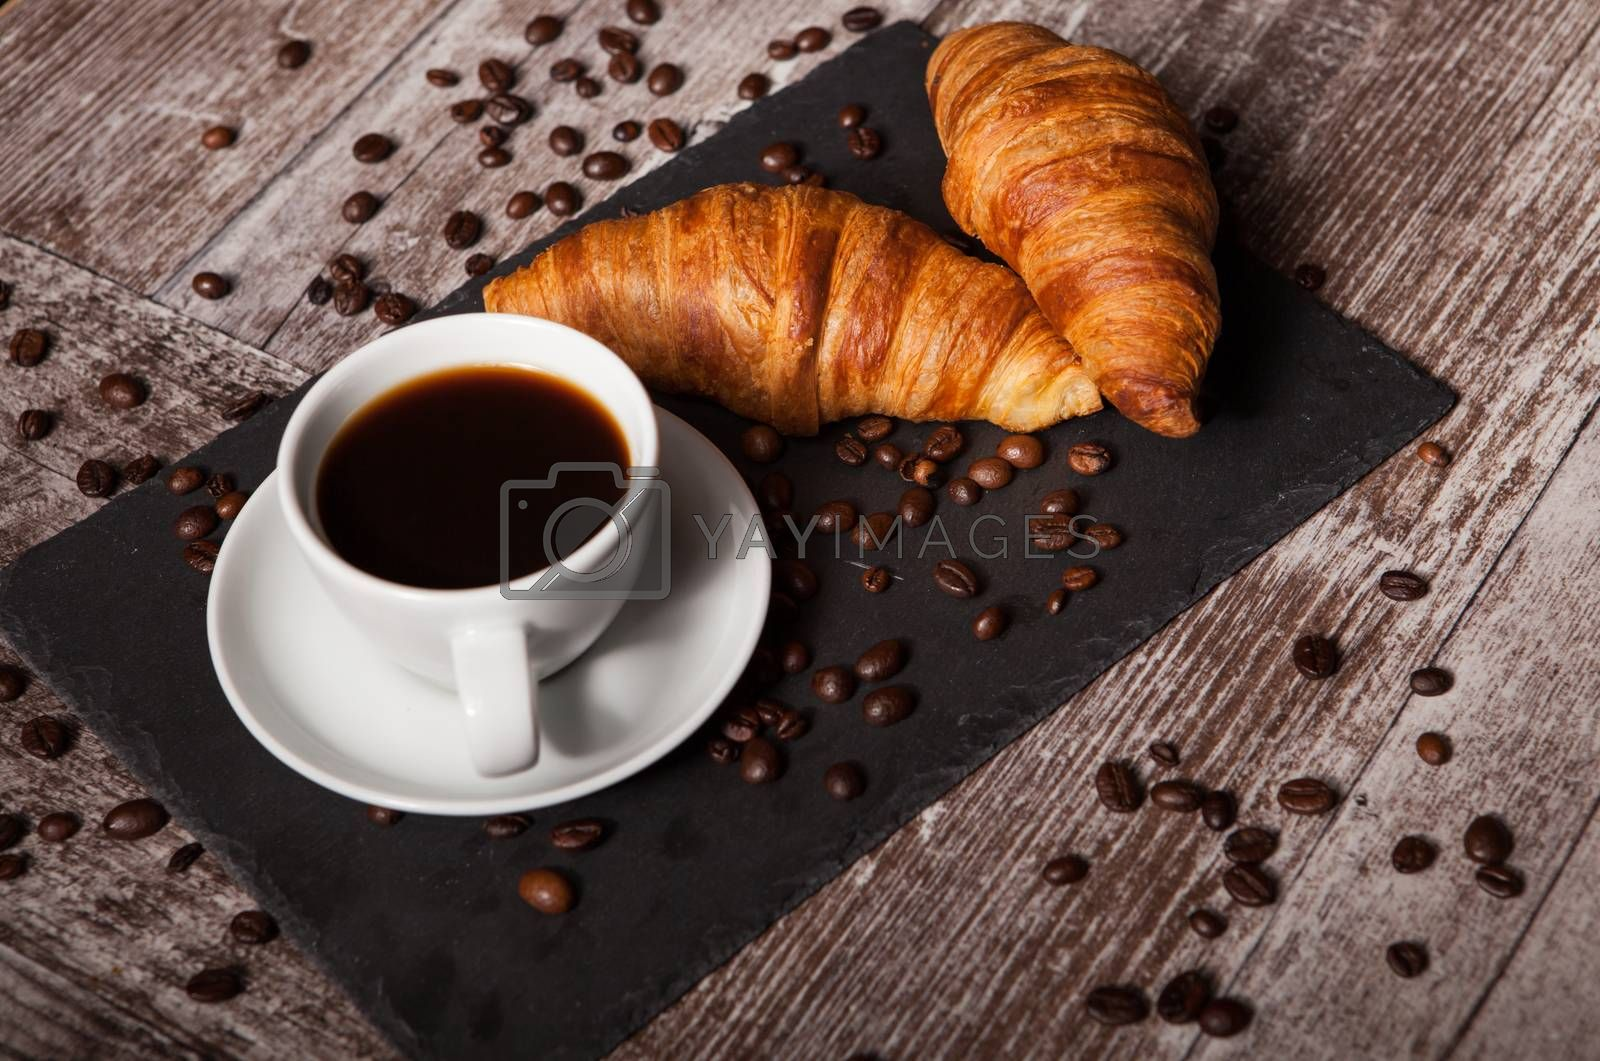 Croissant and cup of hot coffee on dark wooden table. Great breakfast.